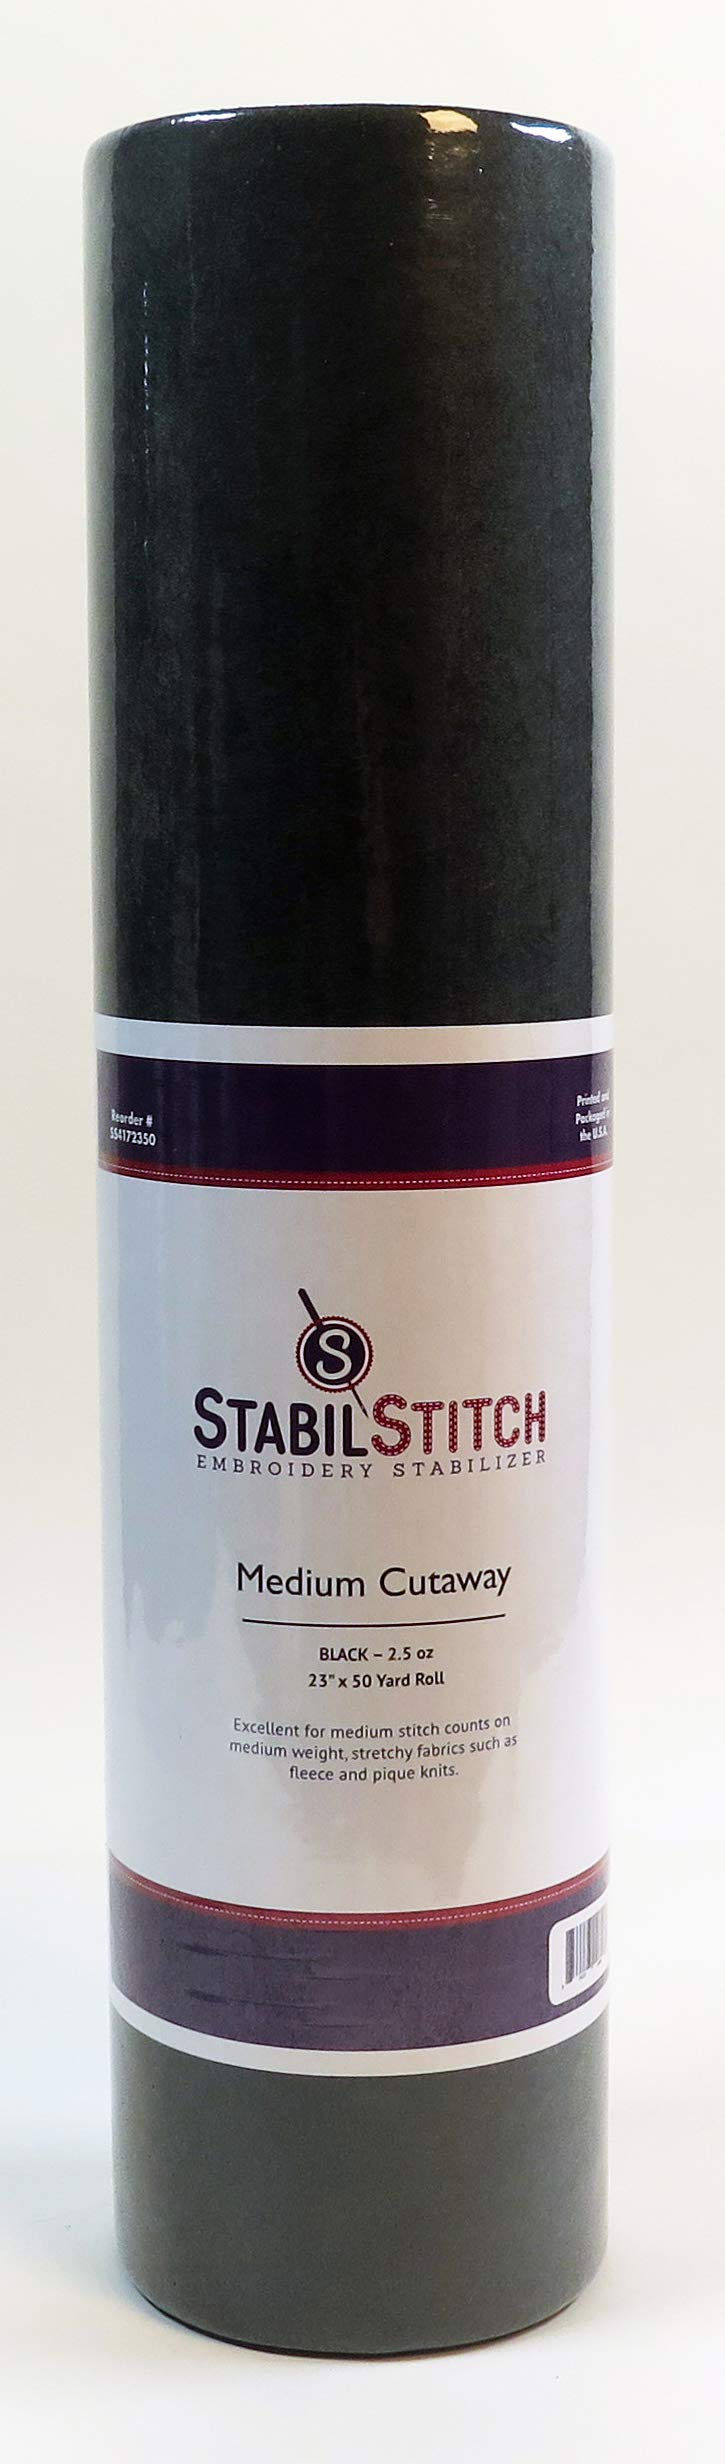 Black Medium (2.5 oz.) Cutaway 23'' x 50 Yd Roll - Embroidery Stabilizer by StabilStitch